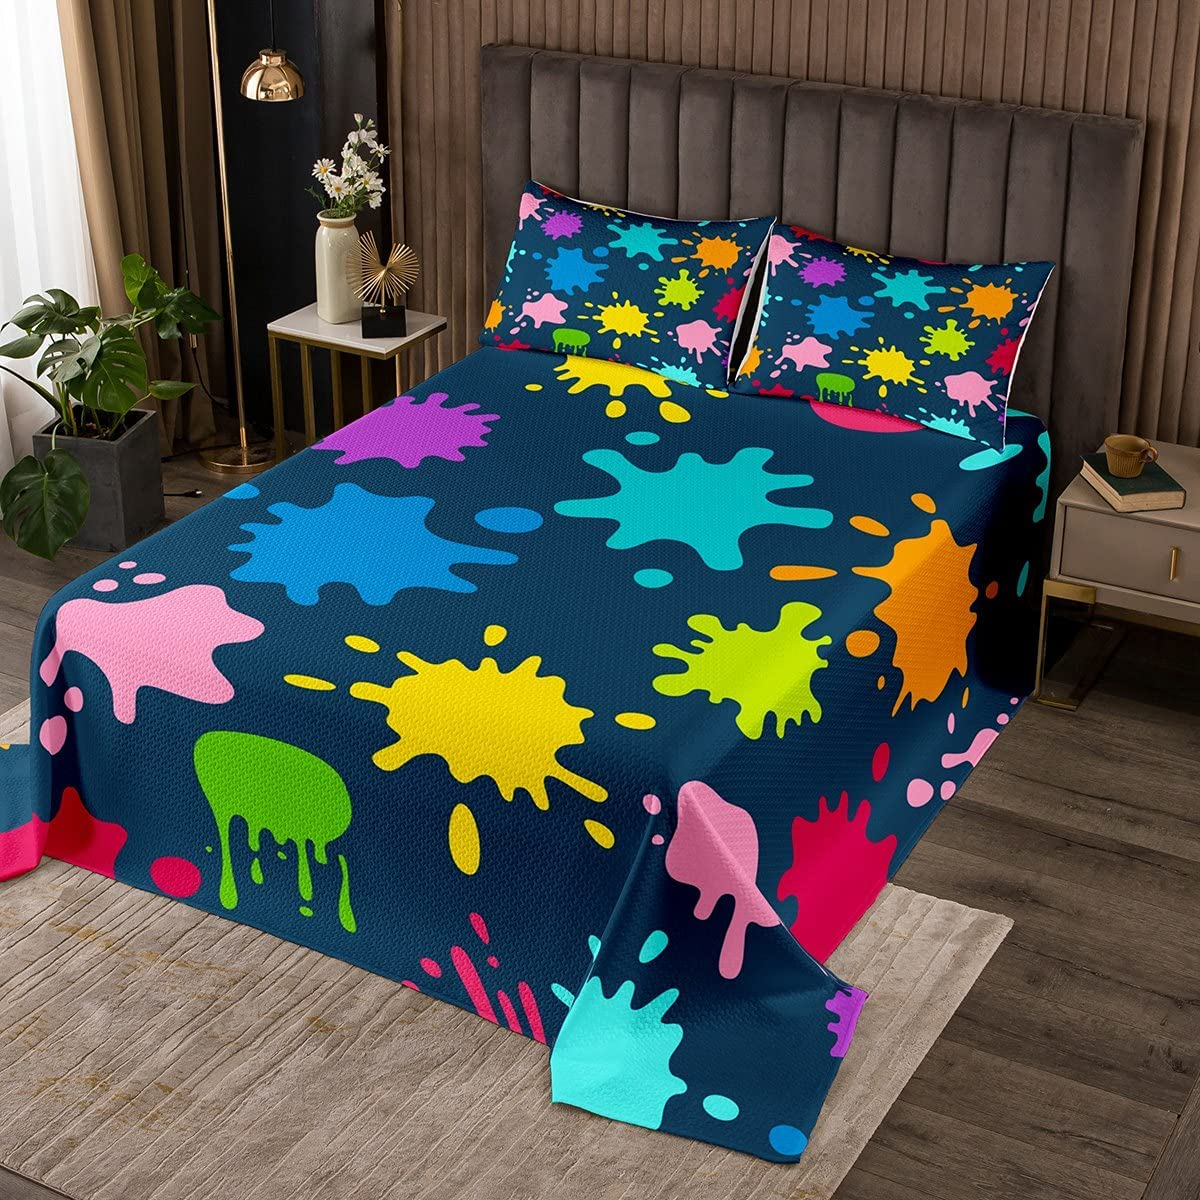 Watercolor 3 Piece King Bedspread Painting Max 51% OFF New sales Graffiti Hip Quil Hop